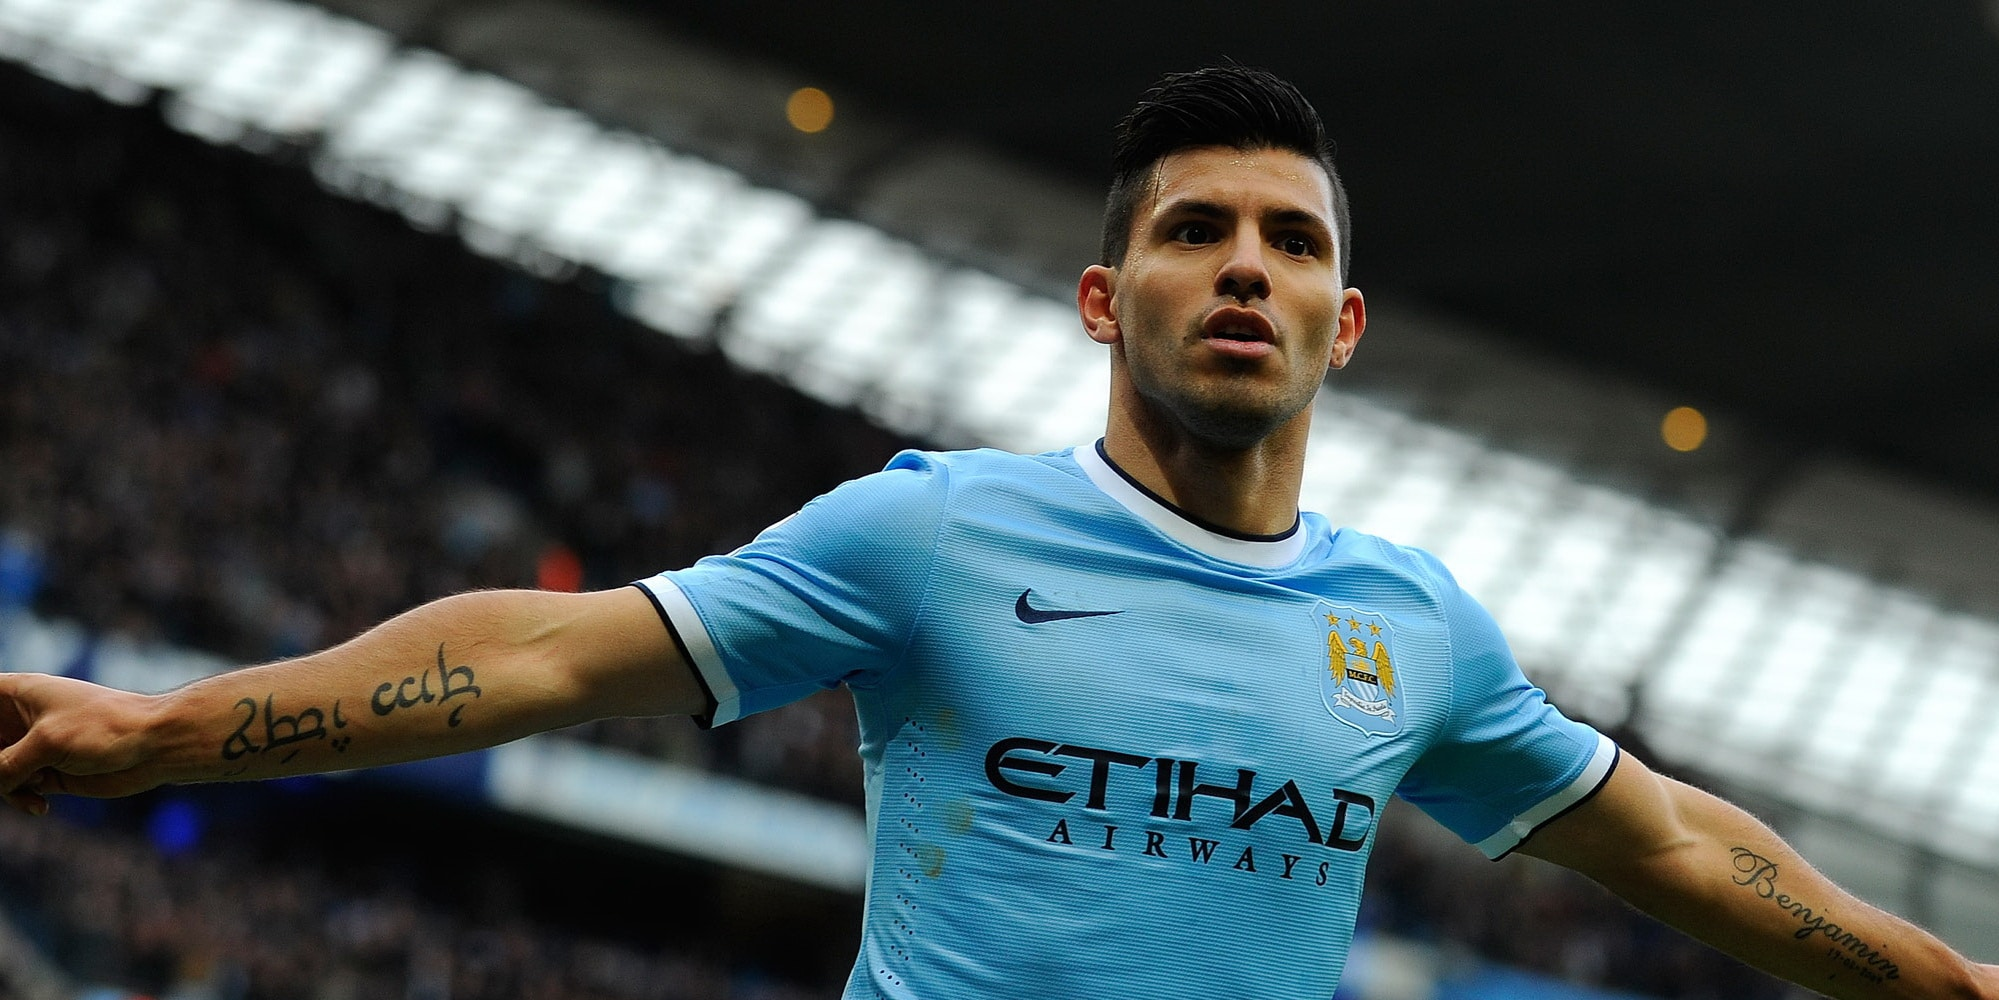 Sergio Aguero Net Worth, Salary, Income & Assets in 2018